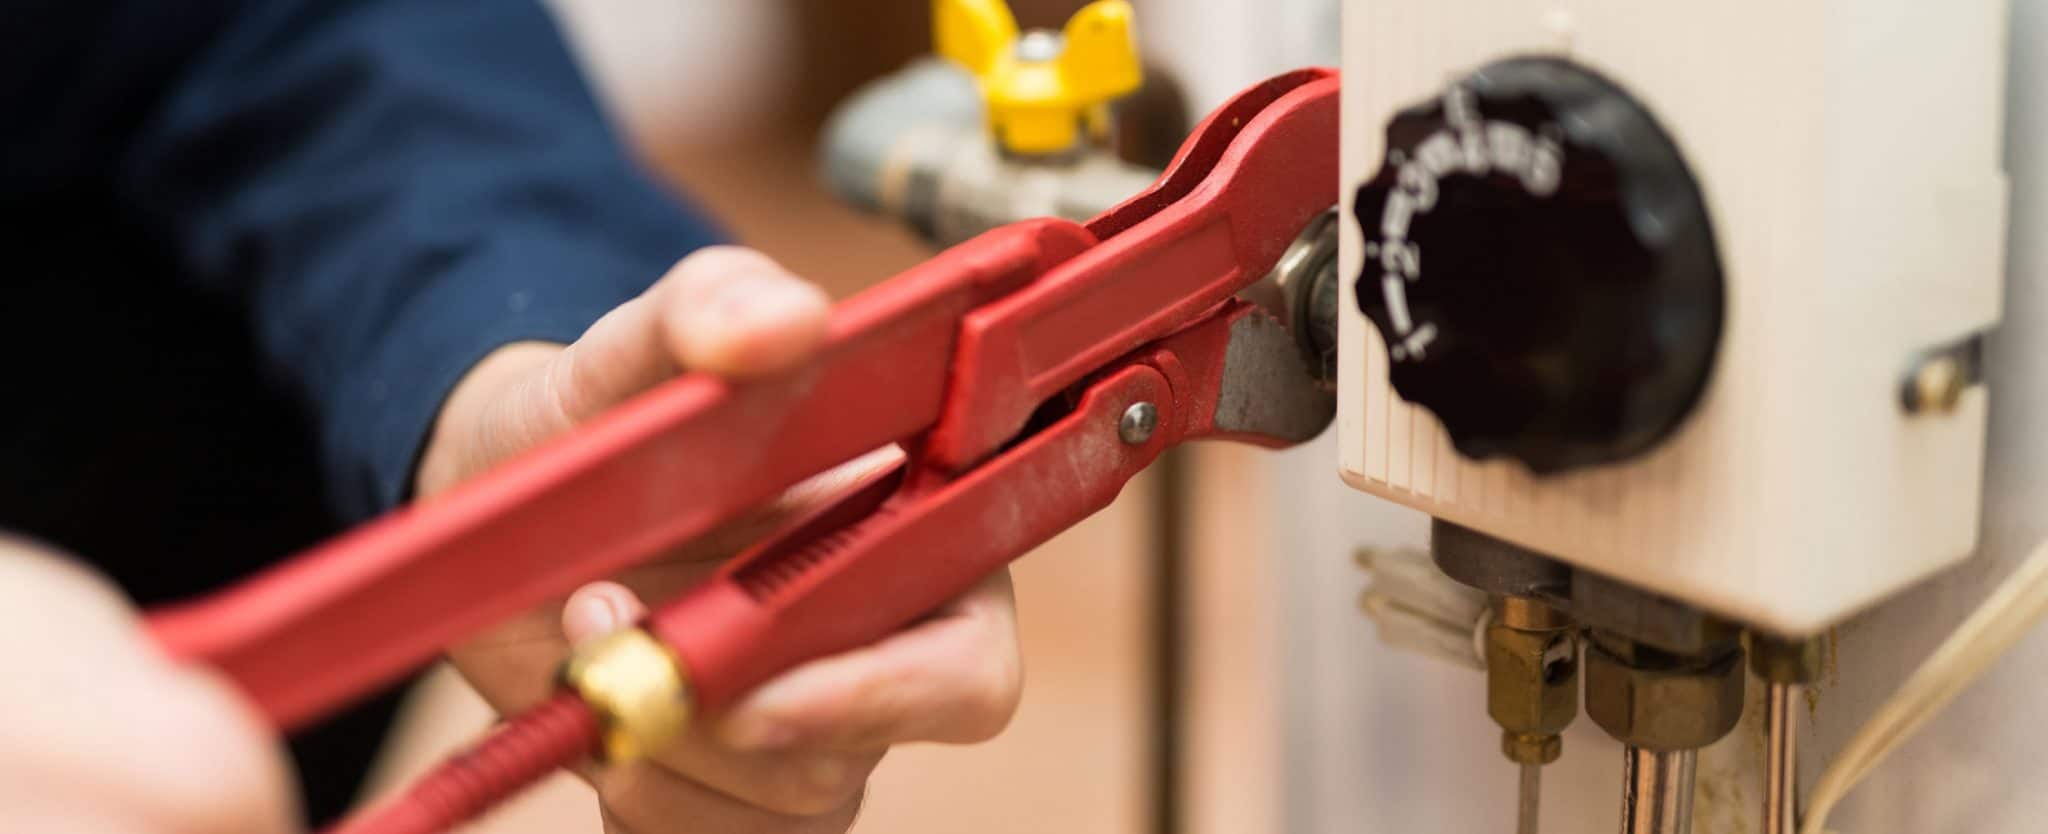 When Is It Time To Replace Your Hot Water Heater?